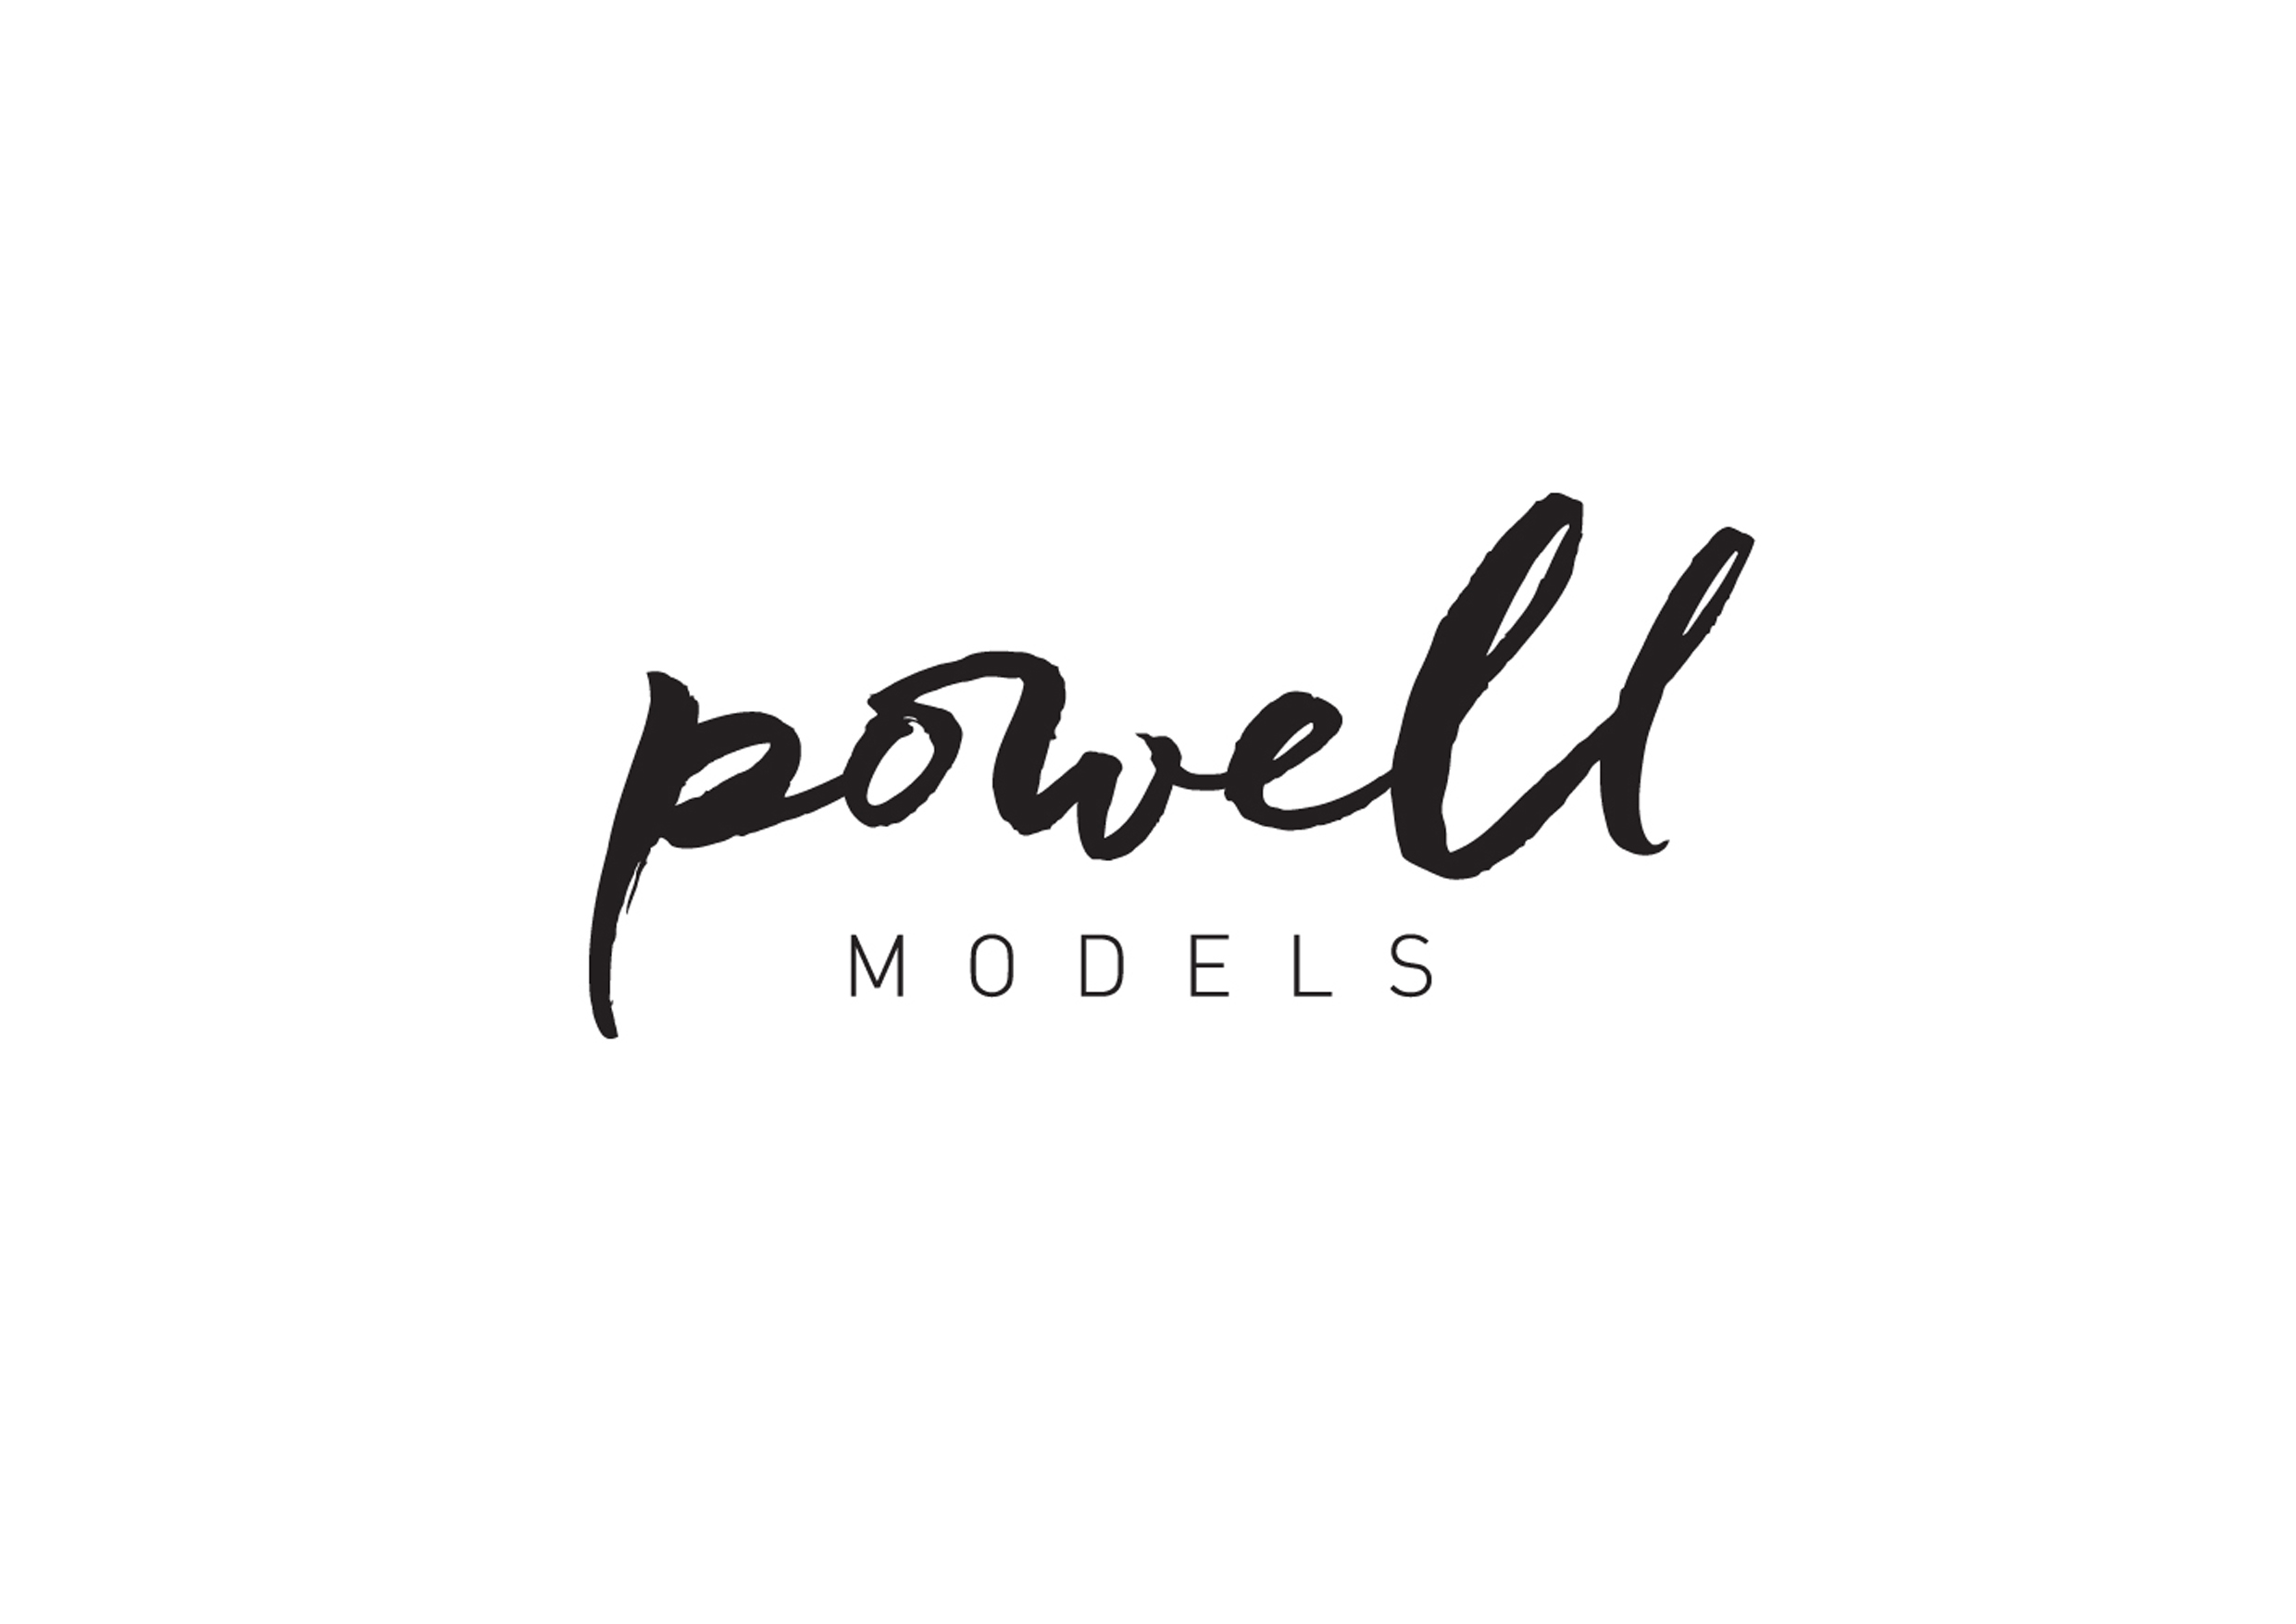 POWELL MODELS LOGO